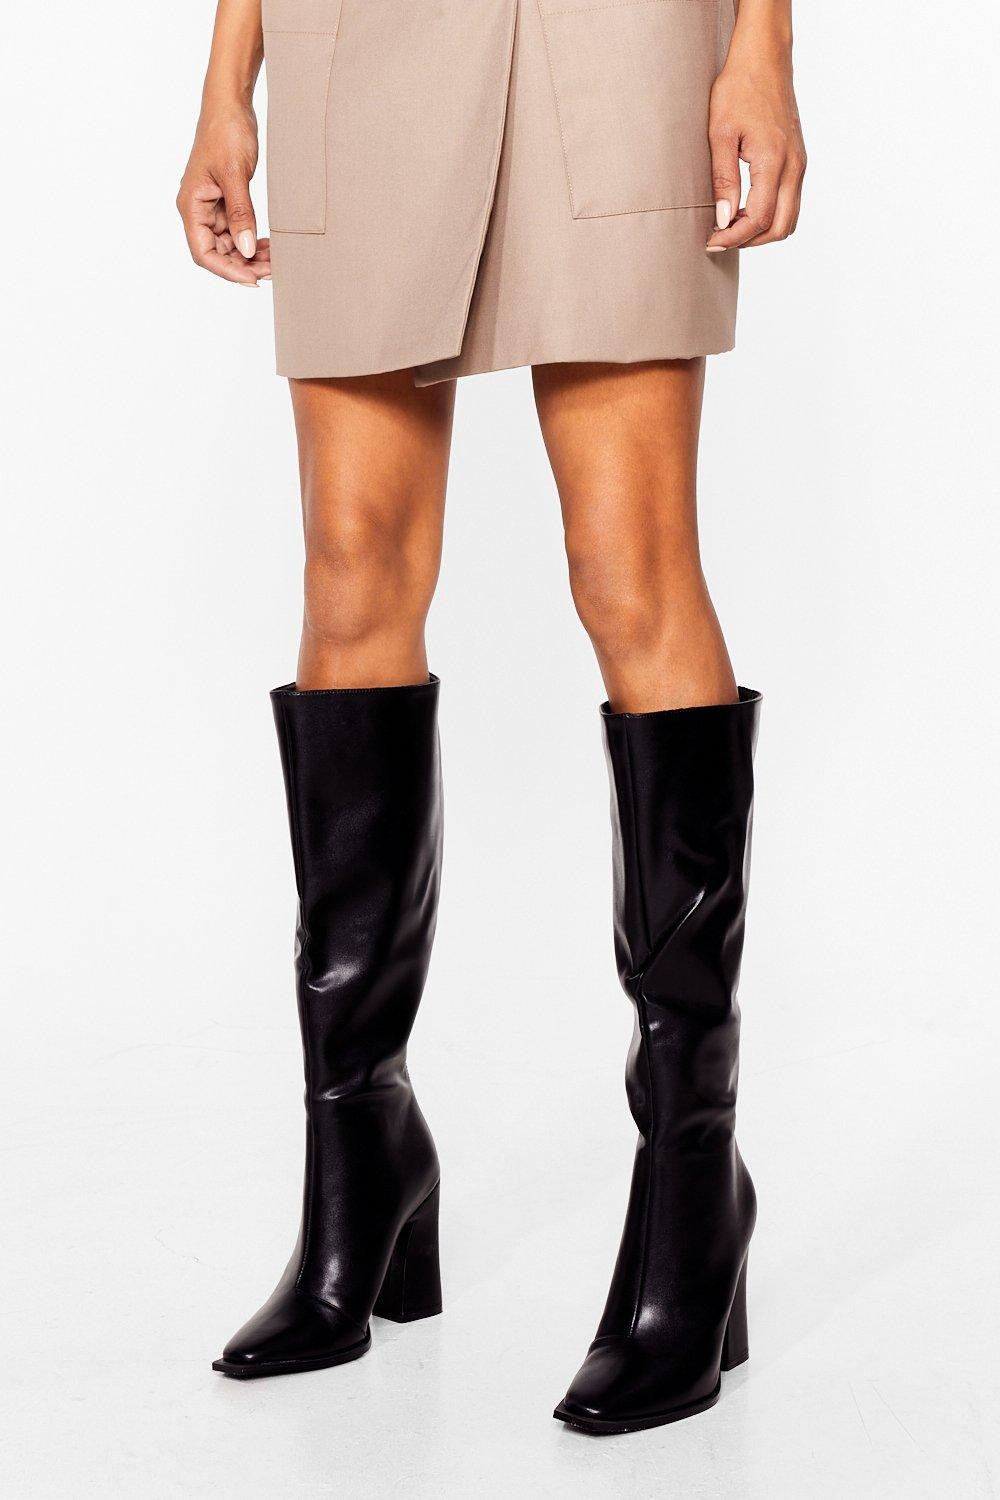 Details about  /Women Slouch Pull On Block High Heel Round Toe Knee High Riding Boots Outdoor D